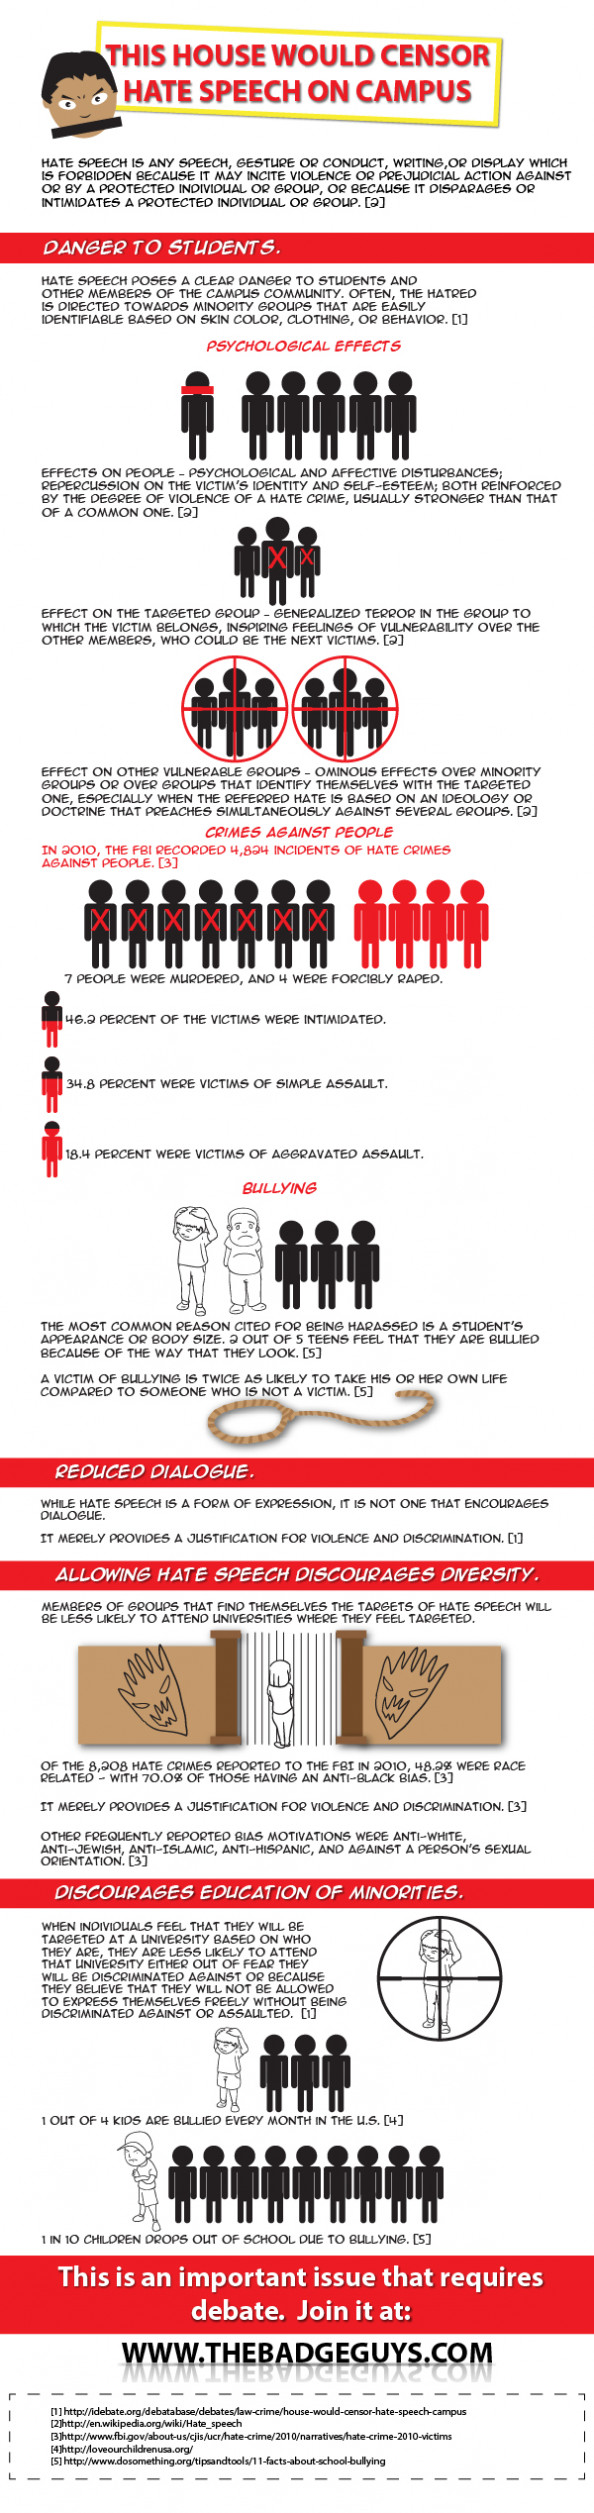 Why We Should Censor Hate Speech Infographic